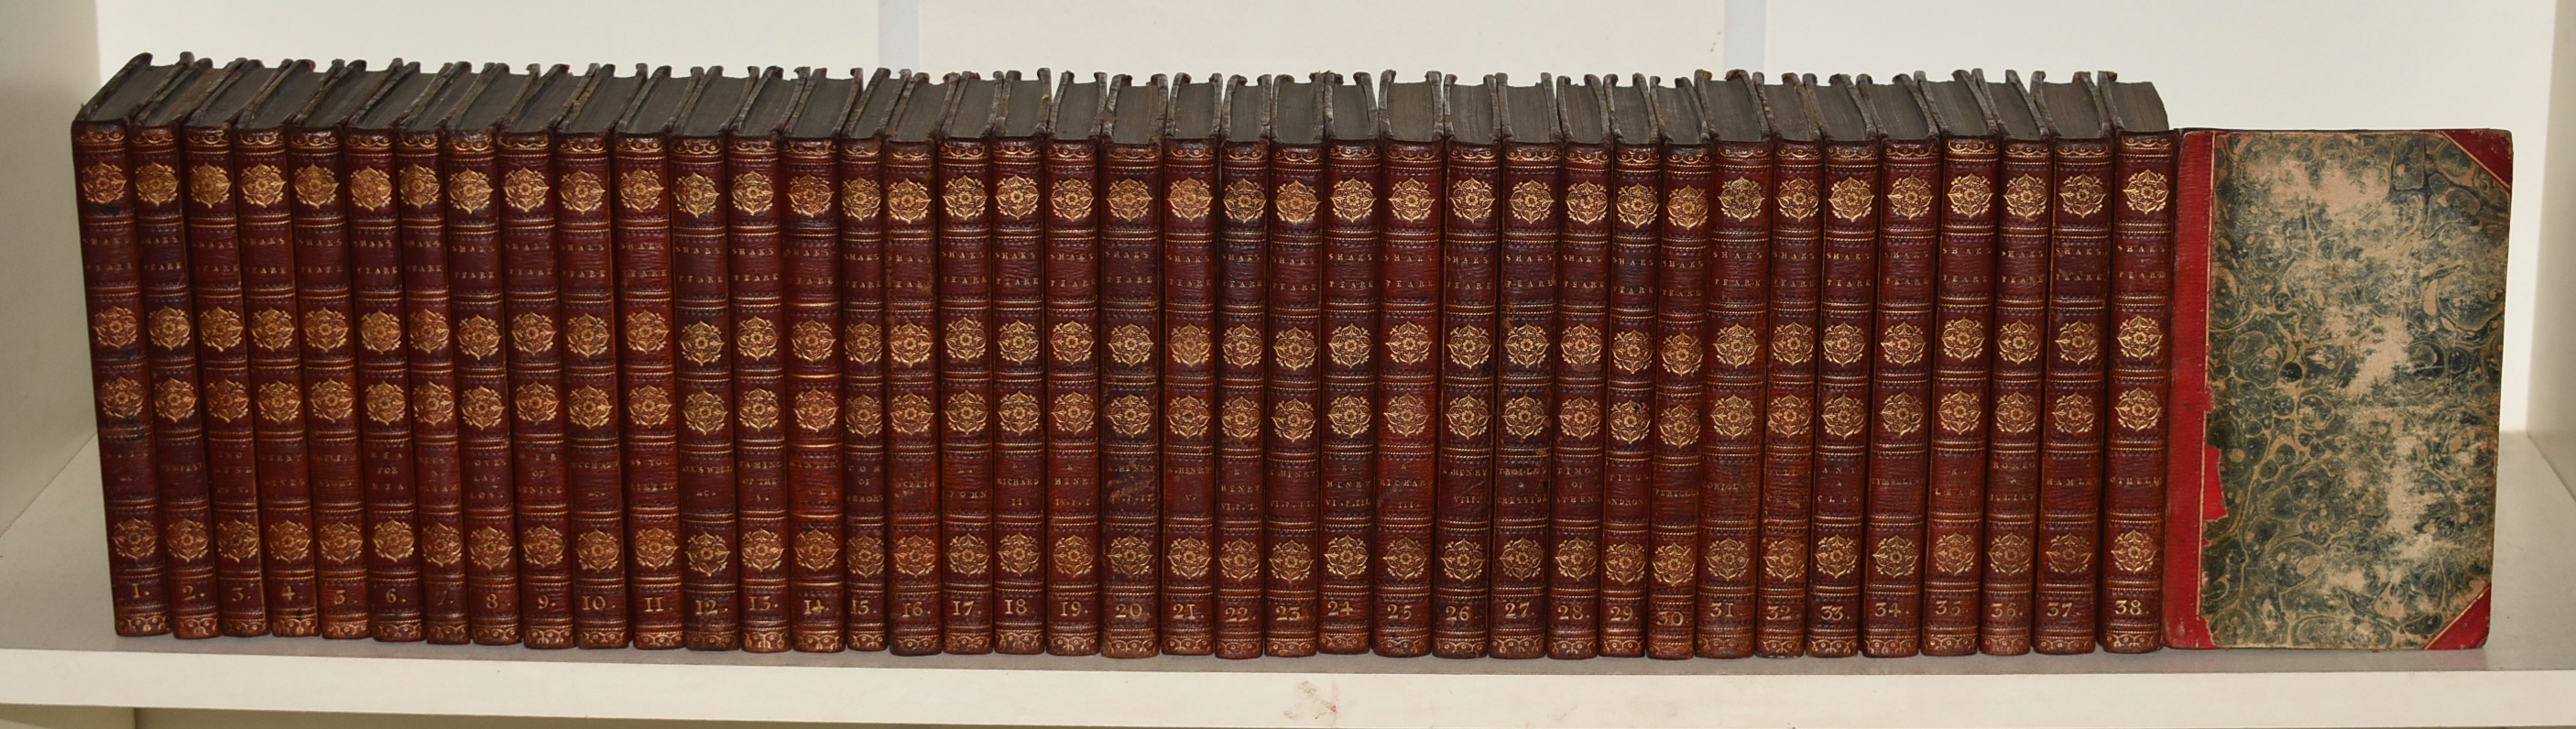 Image for The Plays of William Shakespeare, Complete In 38 Volumes. Bell's Edition.